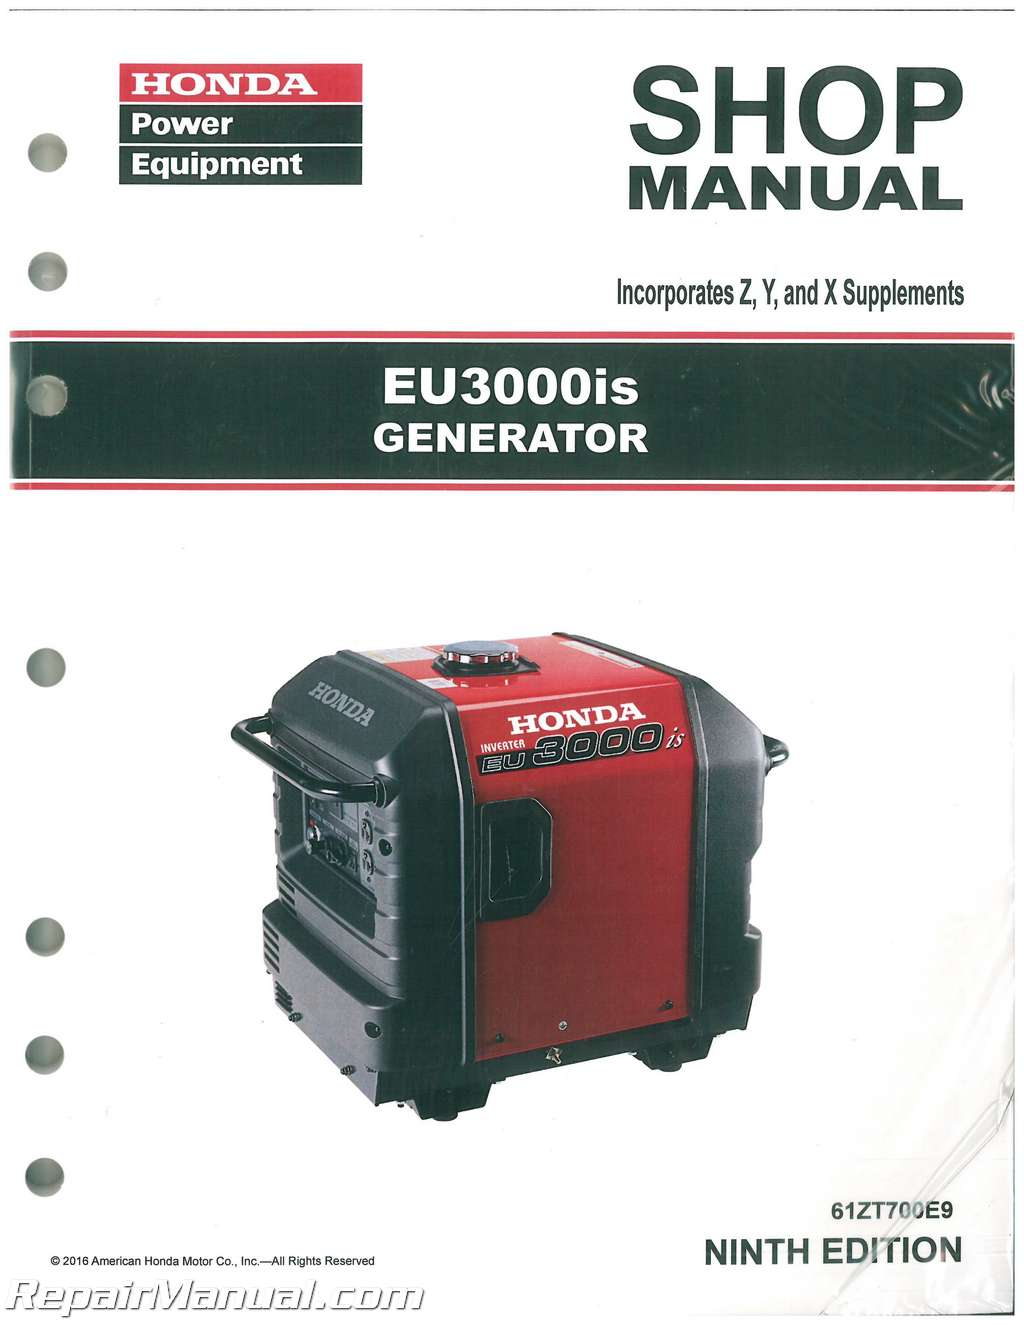 honda eu3000is generator shop manual rh repairmanual com Honda Motorcycle Manuals Honda Manual Book